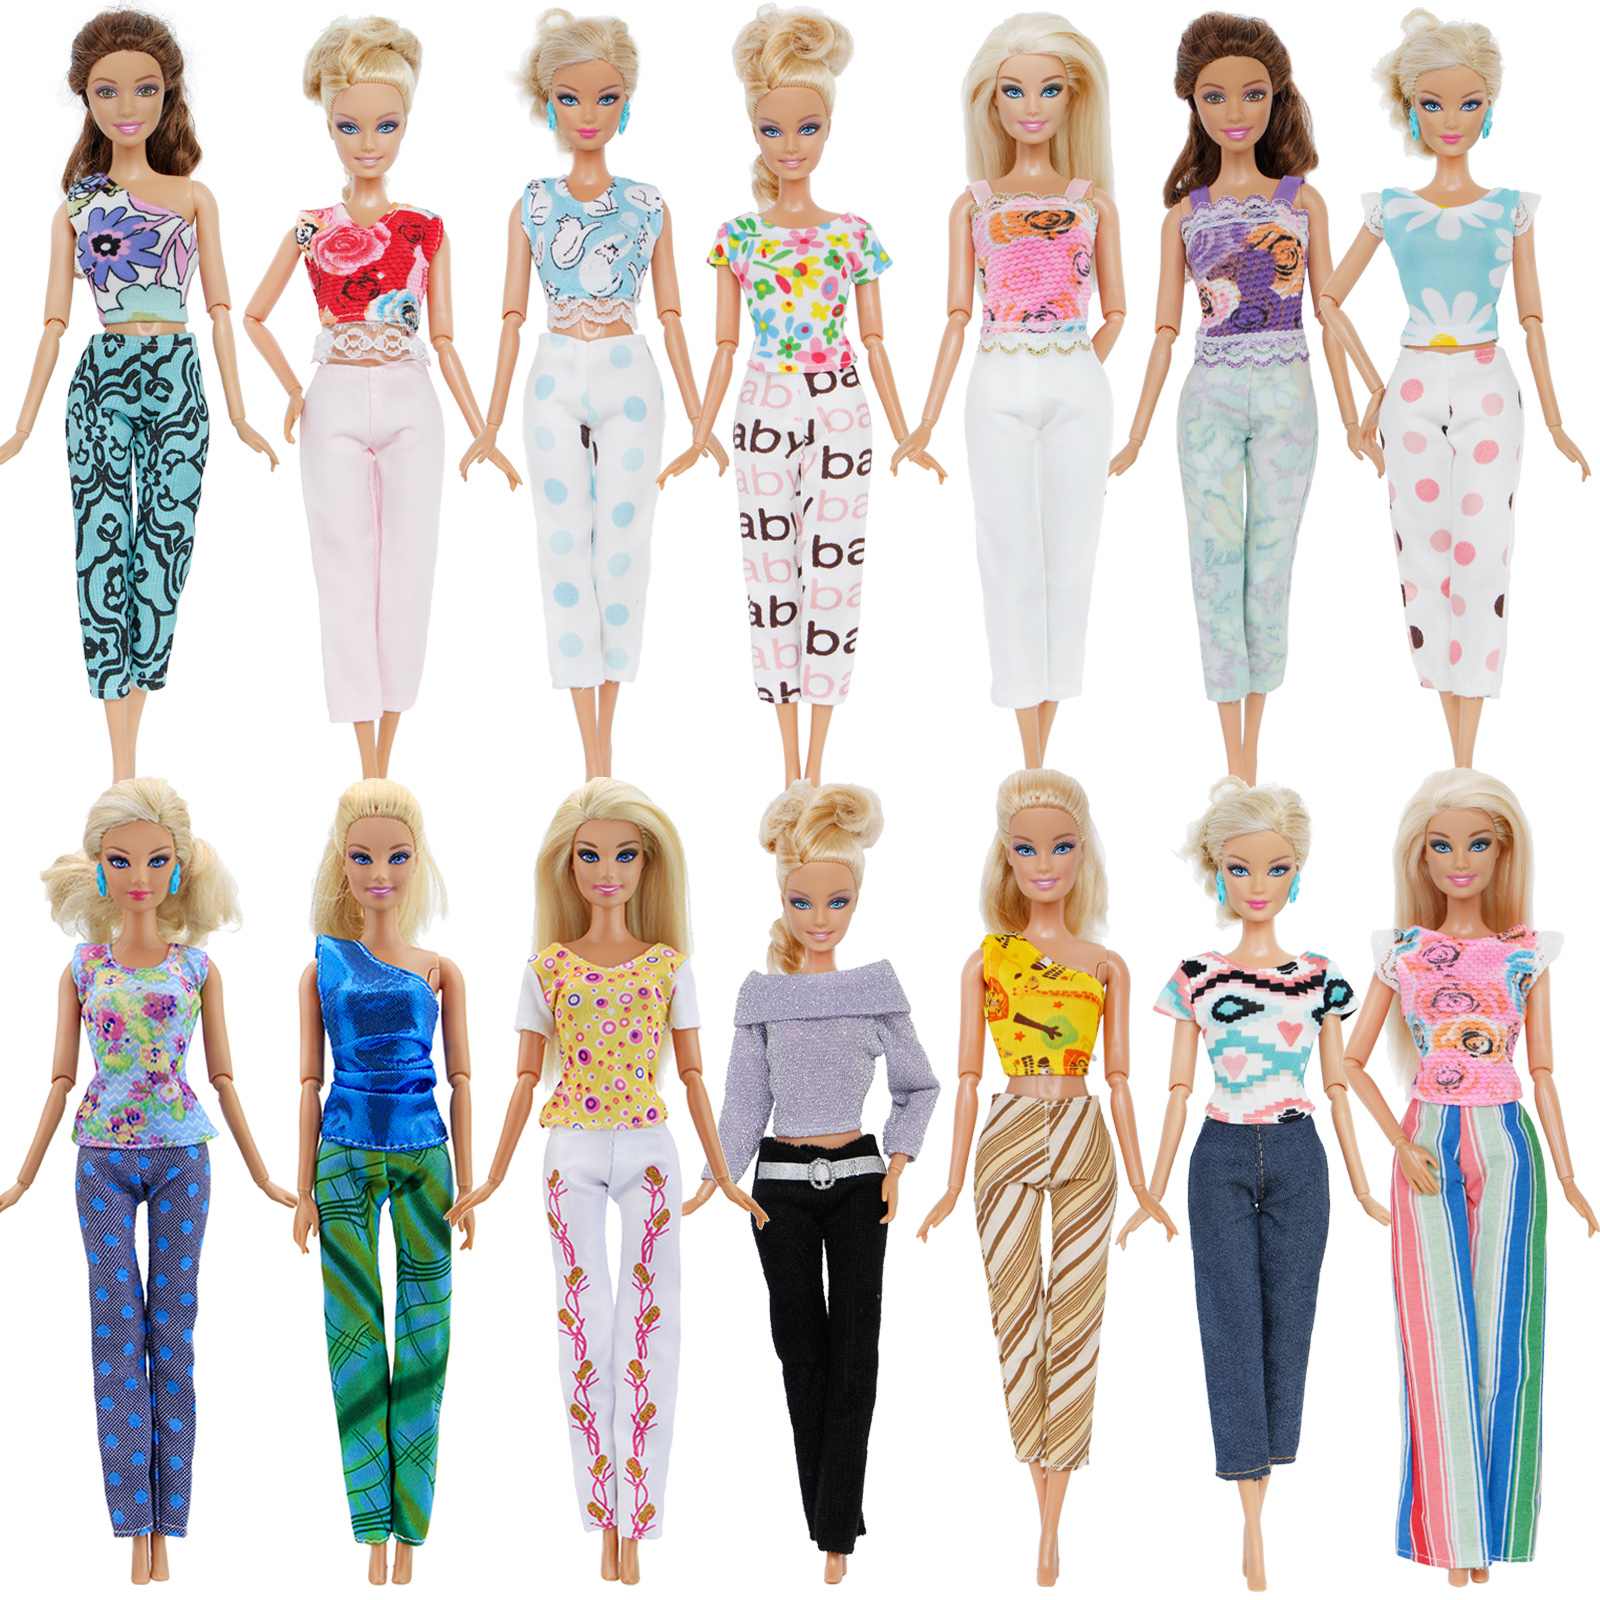 Random 10 Pcs = 5x Blouse + 5x Bottoms Trousers Pants Lady Outfits Girl Daily Wear Dollhouse Accessories Clothes For Barbie Doll